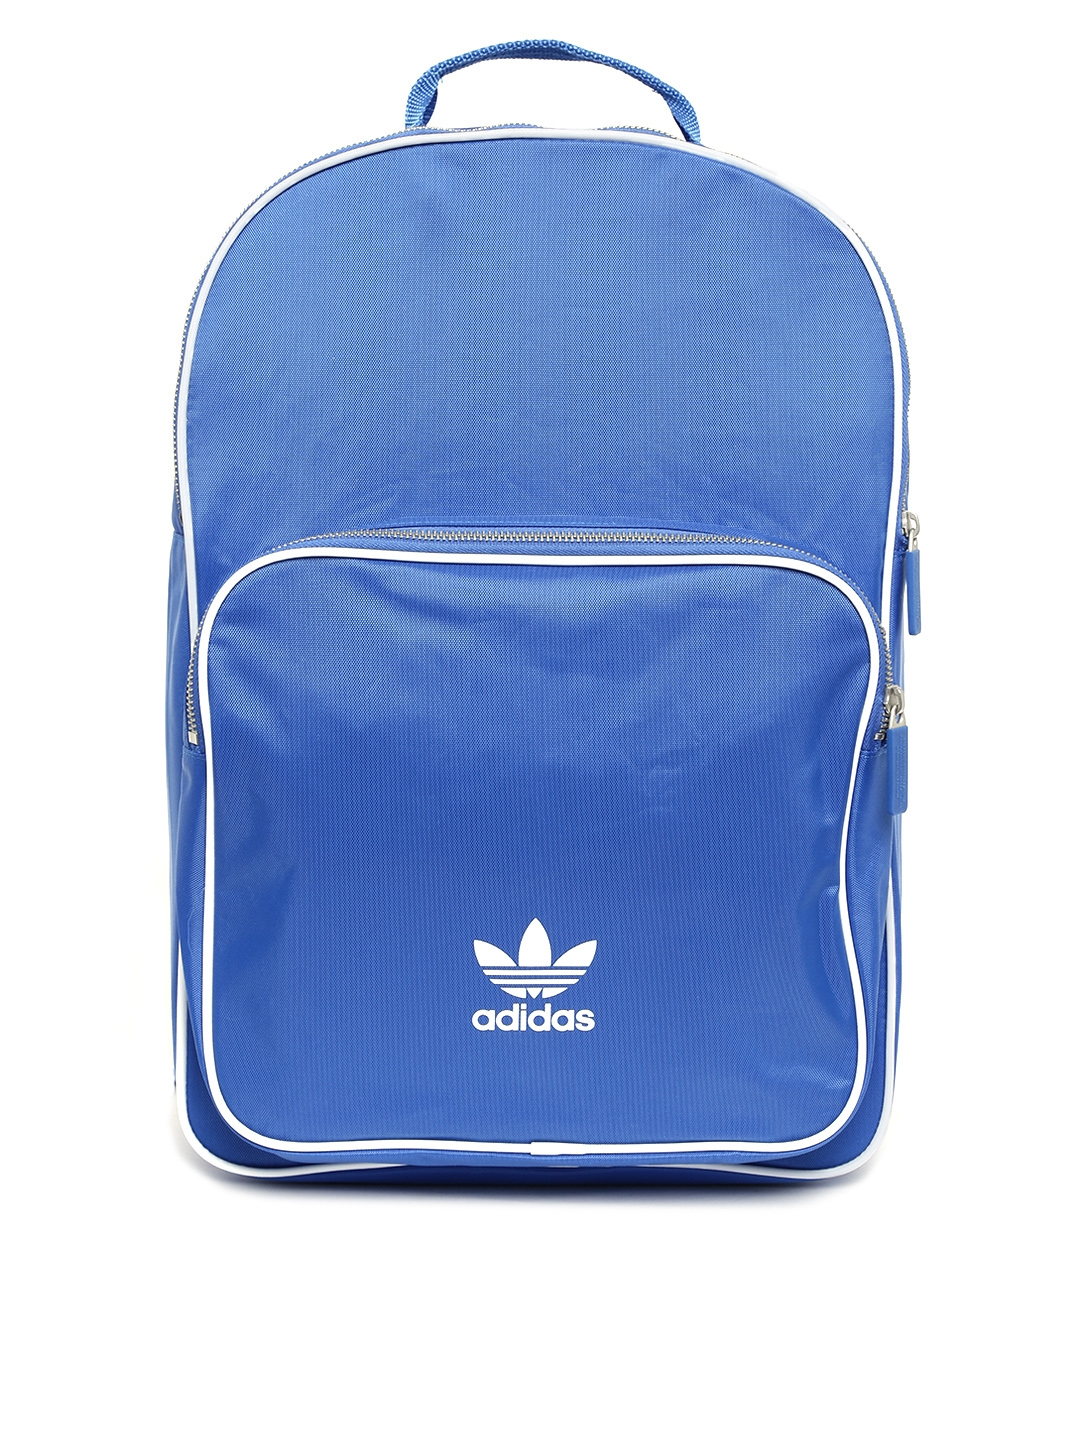 Buy ADIDAS Originals Unisex Blue BP CL ADICOLOR Solid Backpack ... e7e8d01d4e0e8